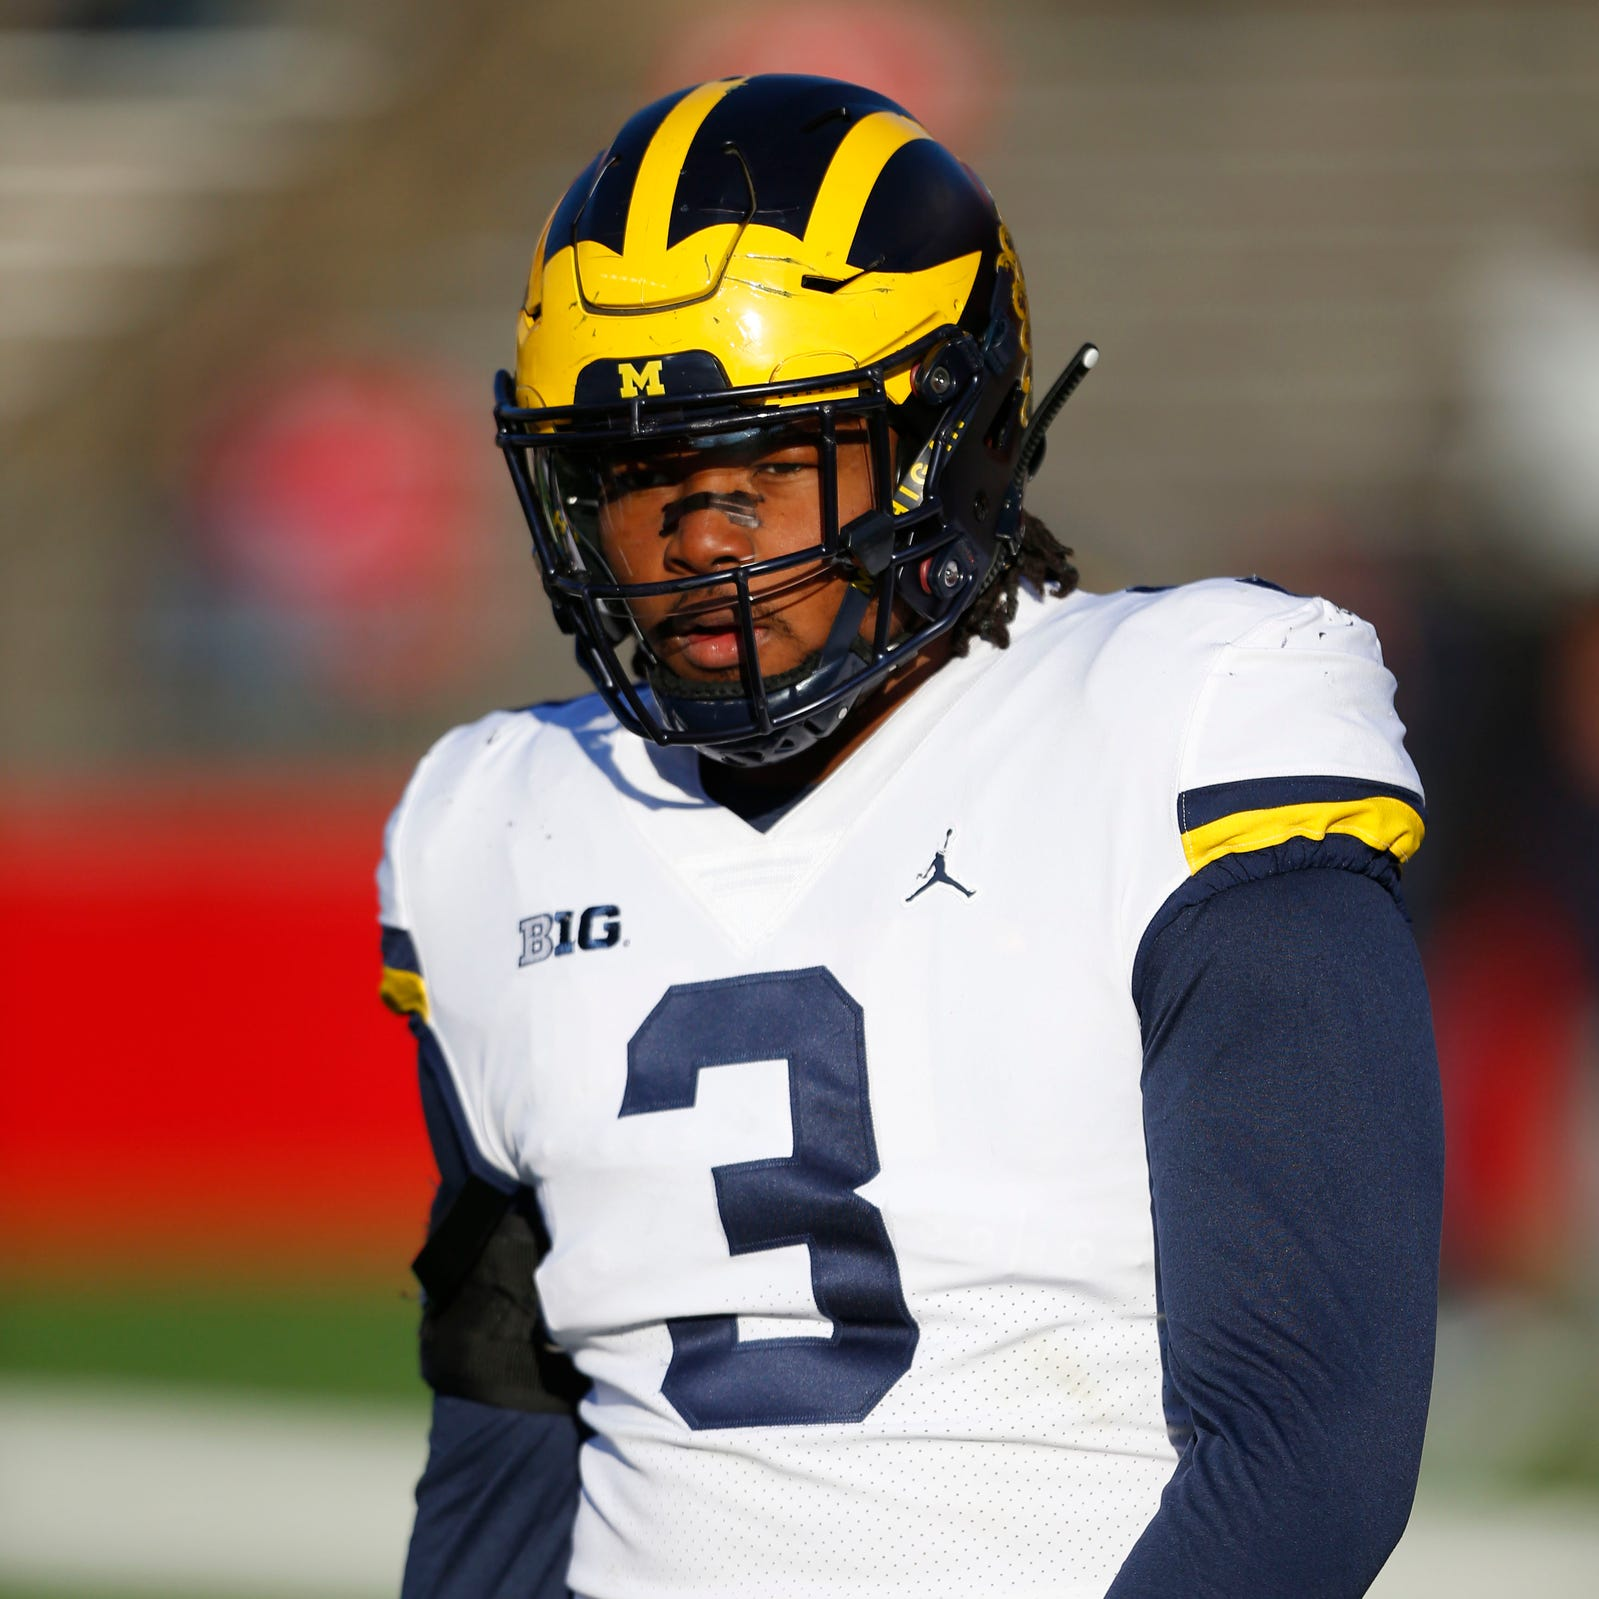 Michigan football: Ohio State losses linger for Rashan Gary